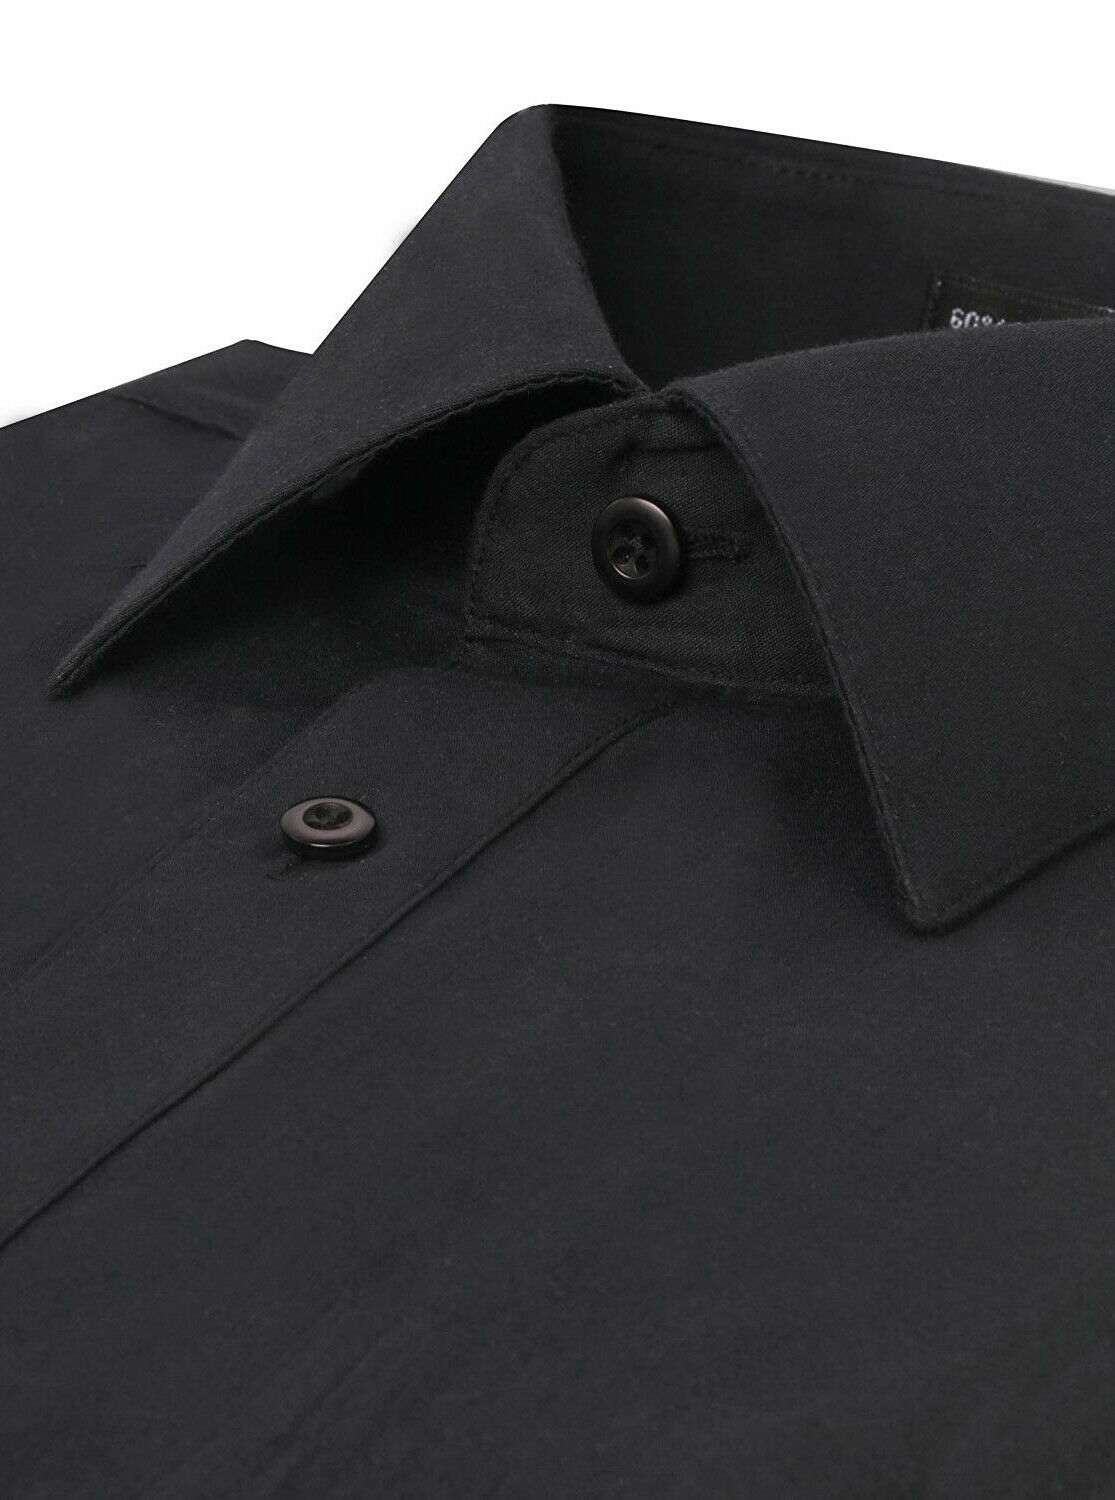 Omega-Italy-Men-039-s-Premium-Slim-Fit-Button-Up-Long-Sleeve-Solid-Color-Dress-Shirt thumbnail 15